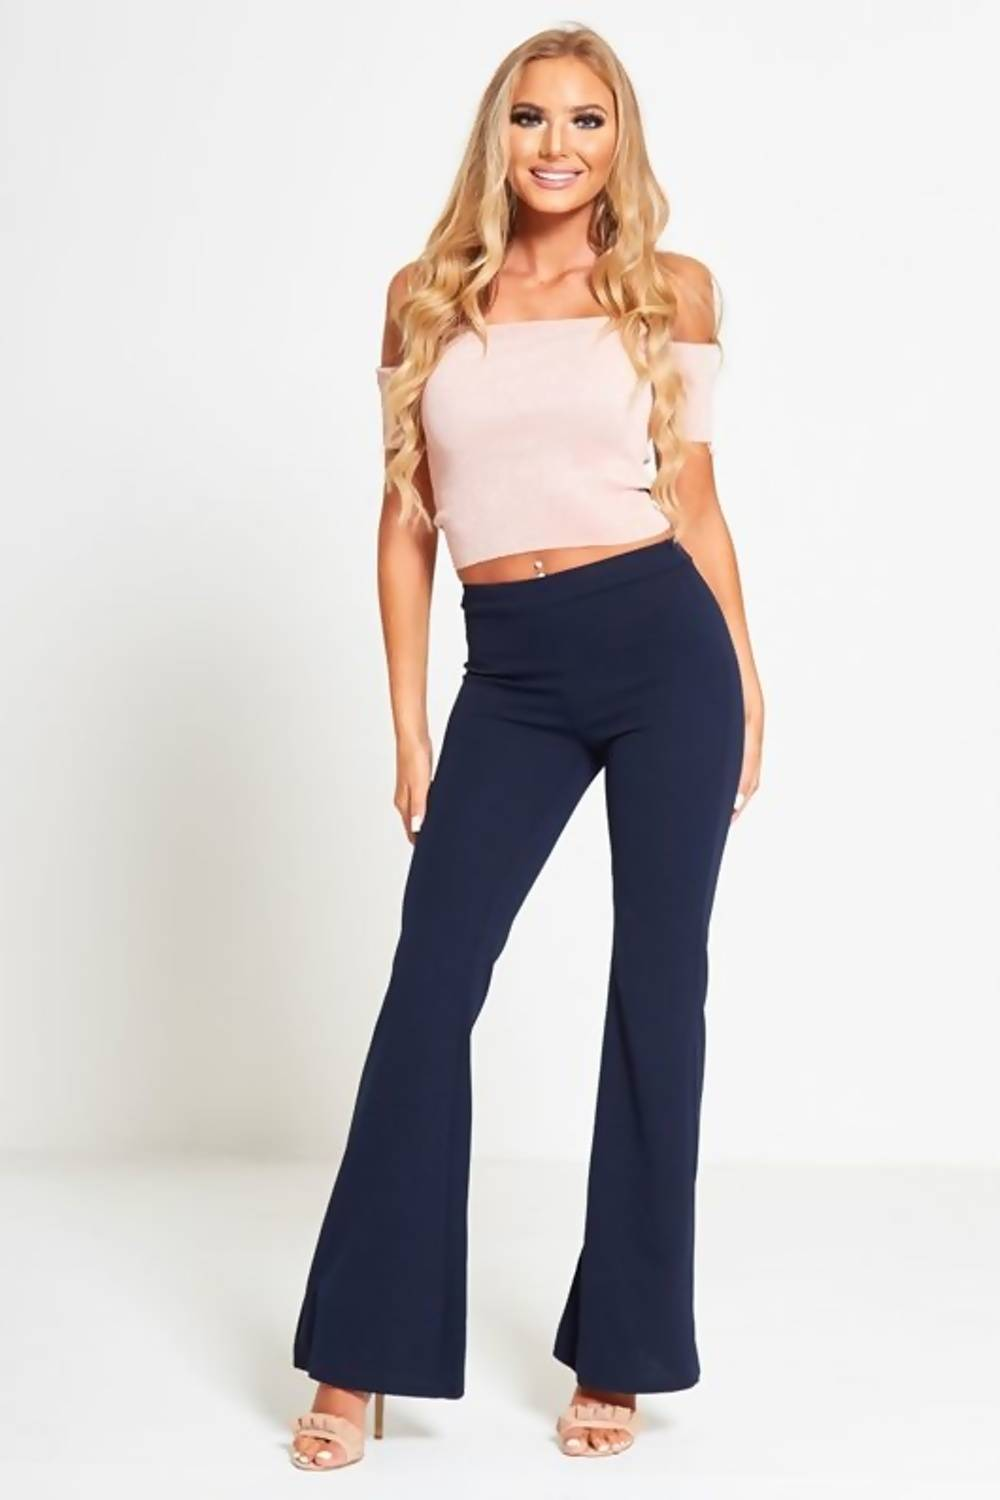 Navy Woven High Rise Flare Trousers J5 Fashion